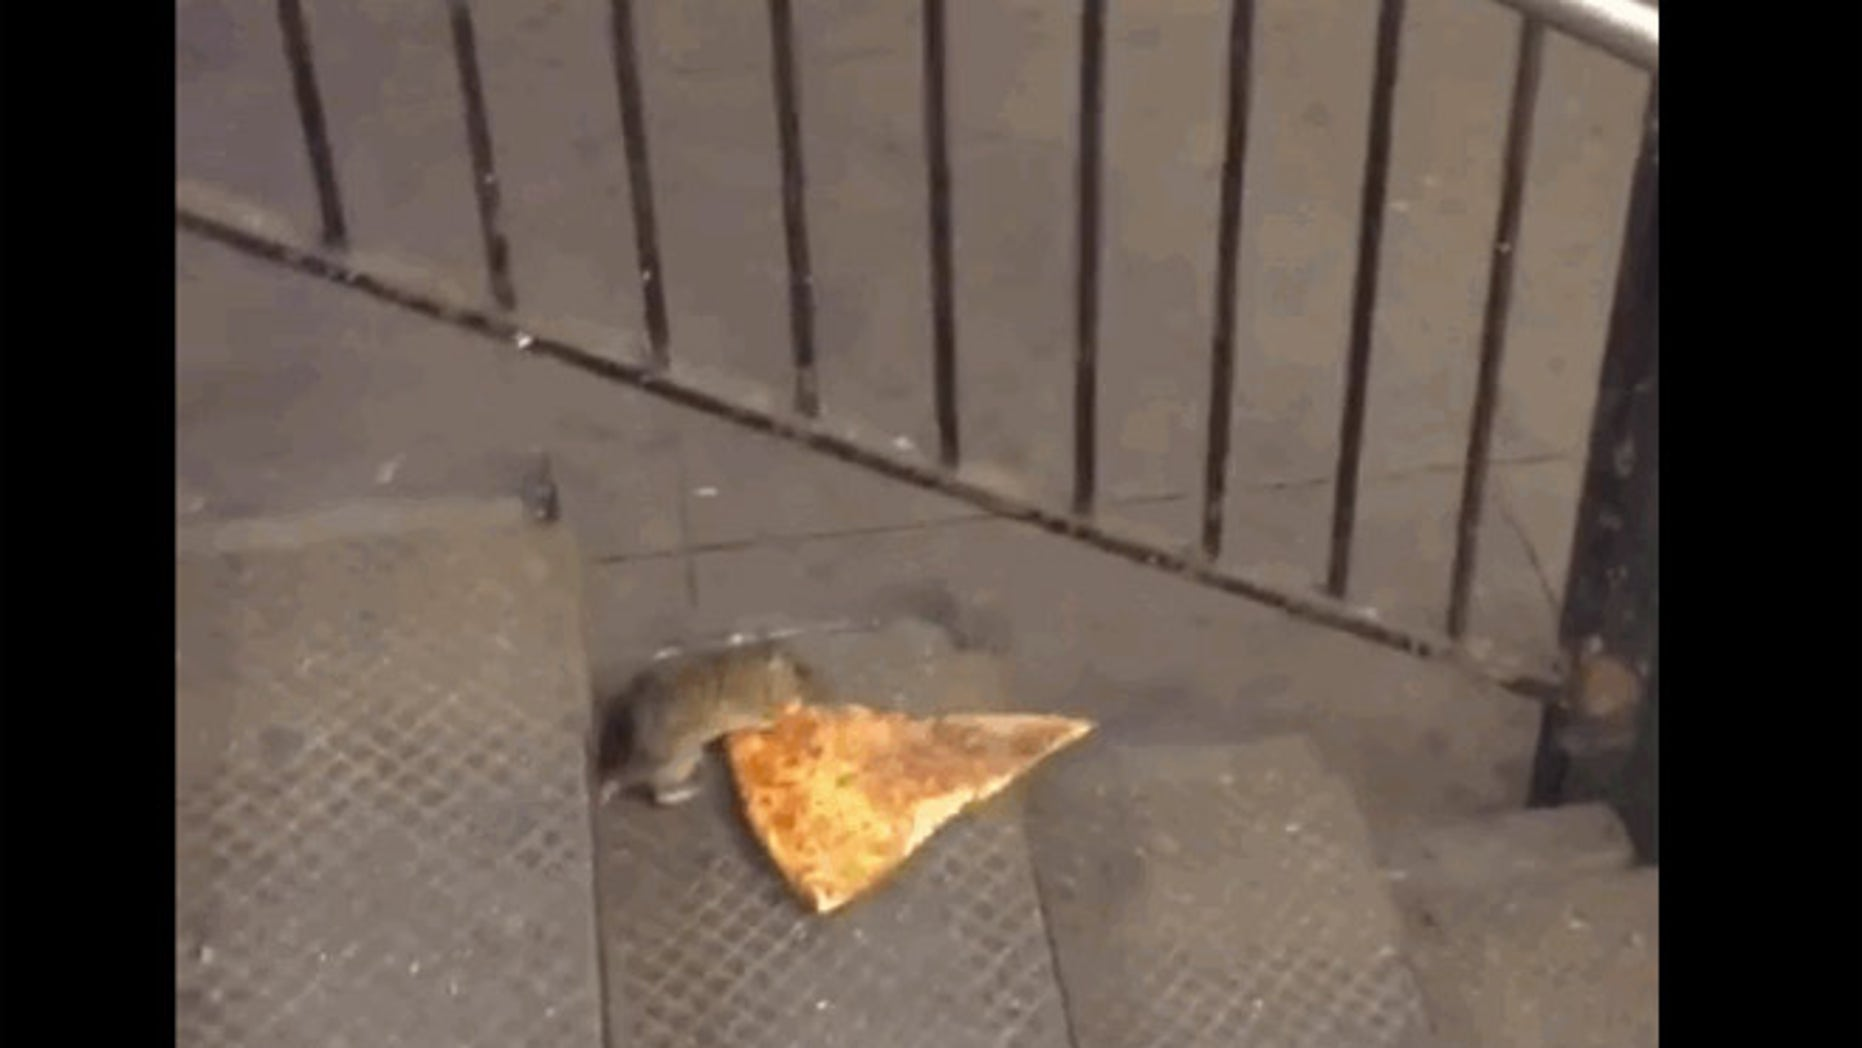 Behold Pizza rat.